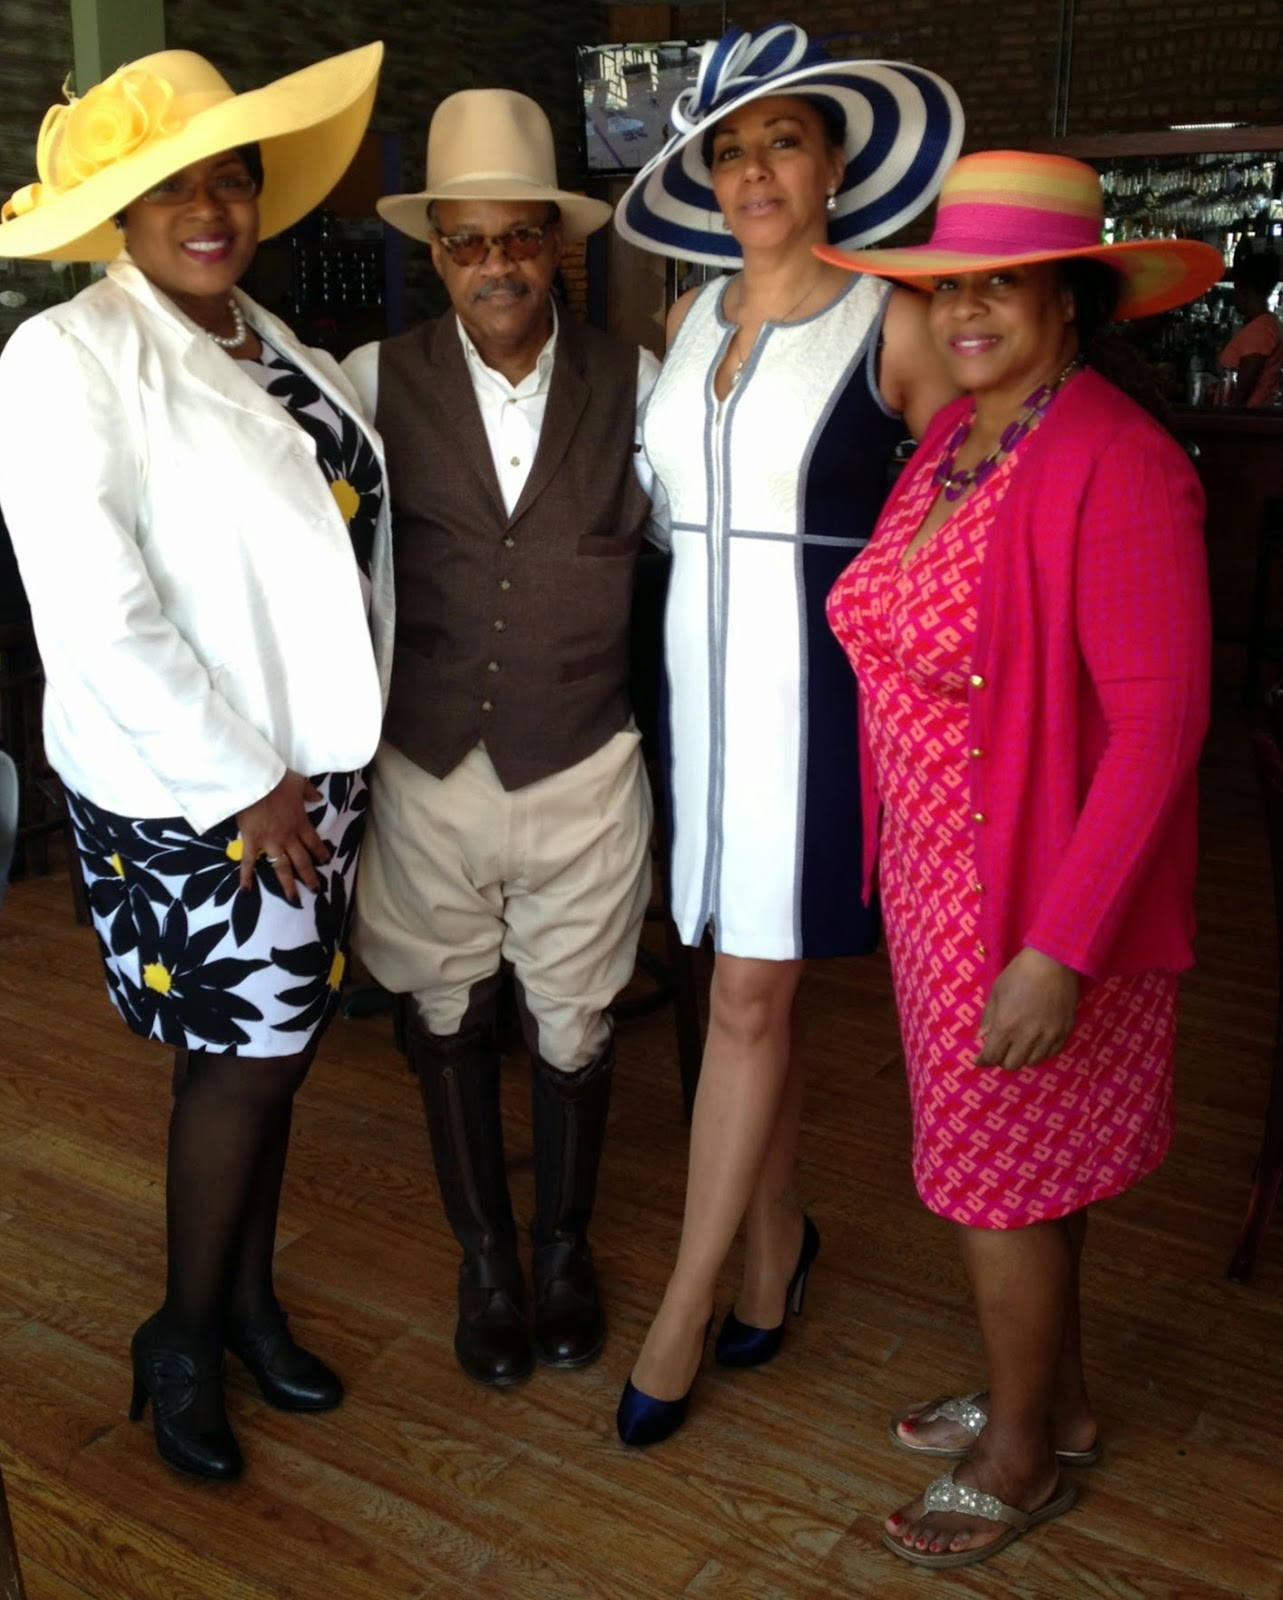 Kentucky Derby Day Party Fashions